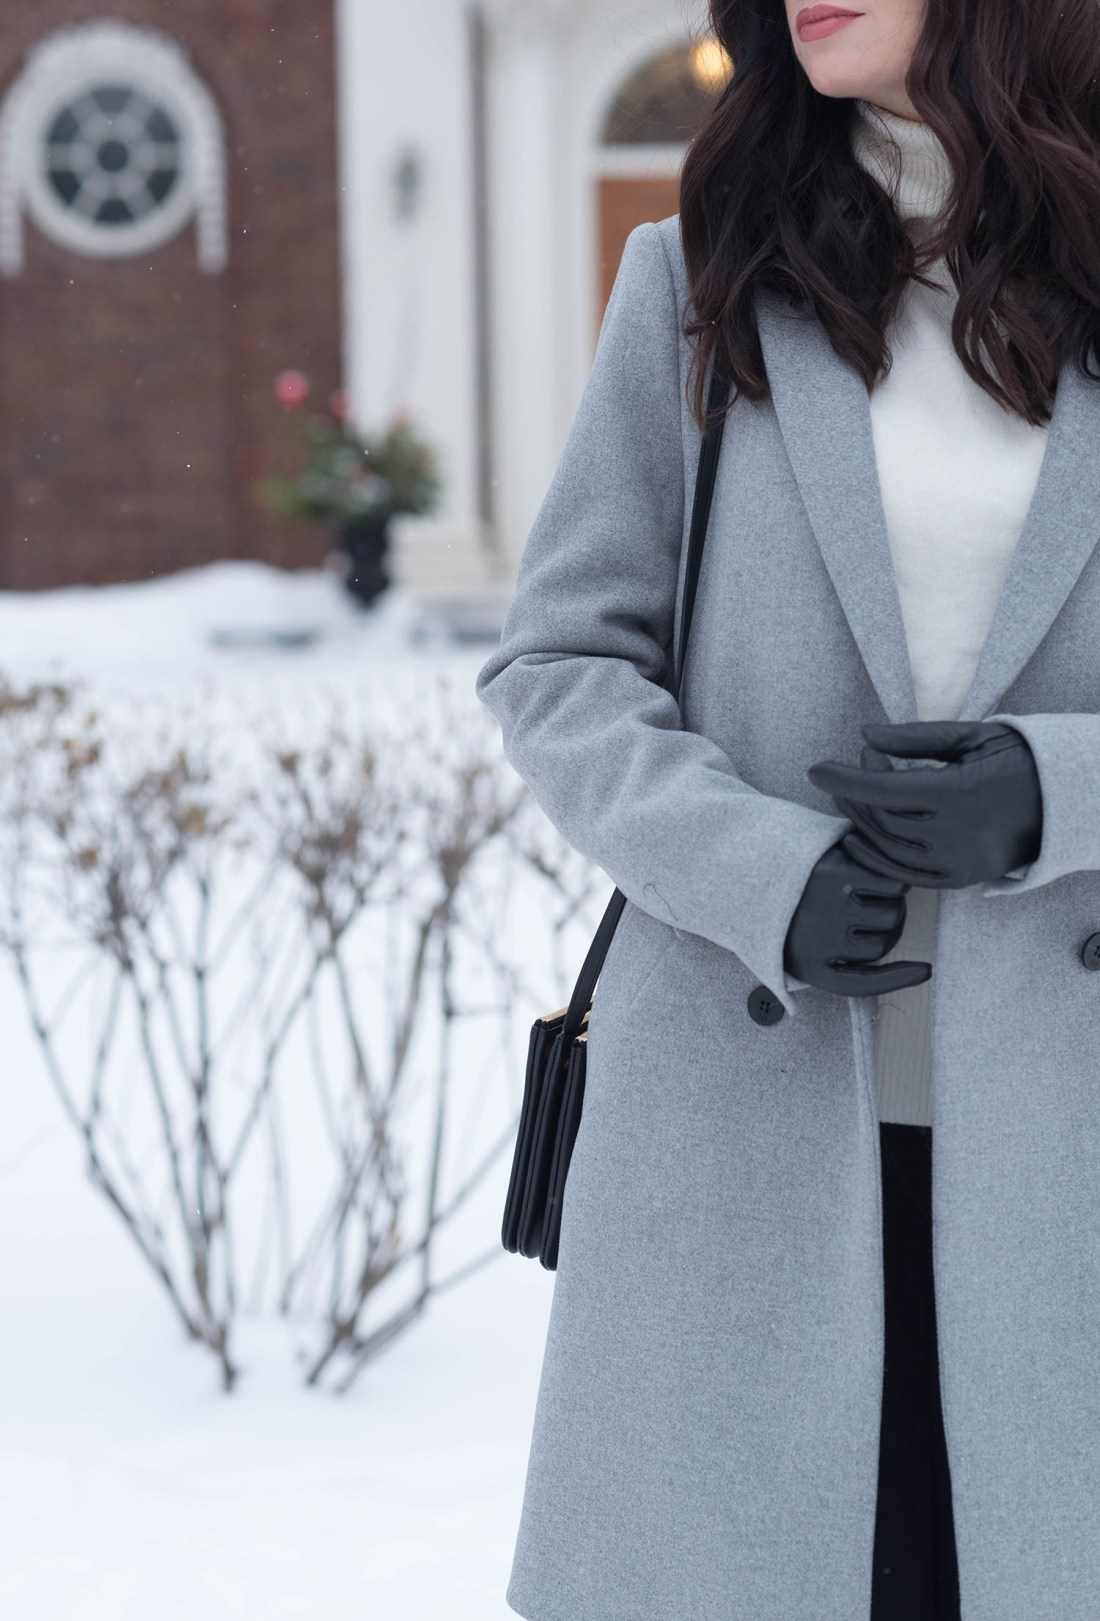 Outfit details on Winnipeg fashion blogger Coco & Vera, including a Celine trio bag and Zara coat